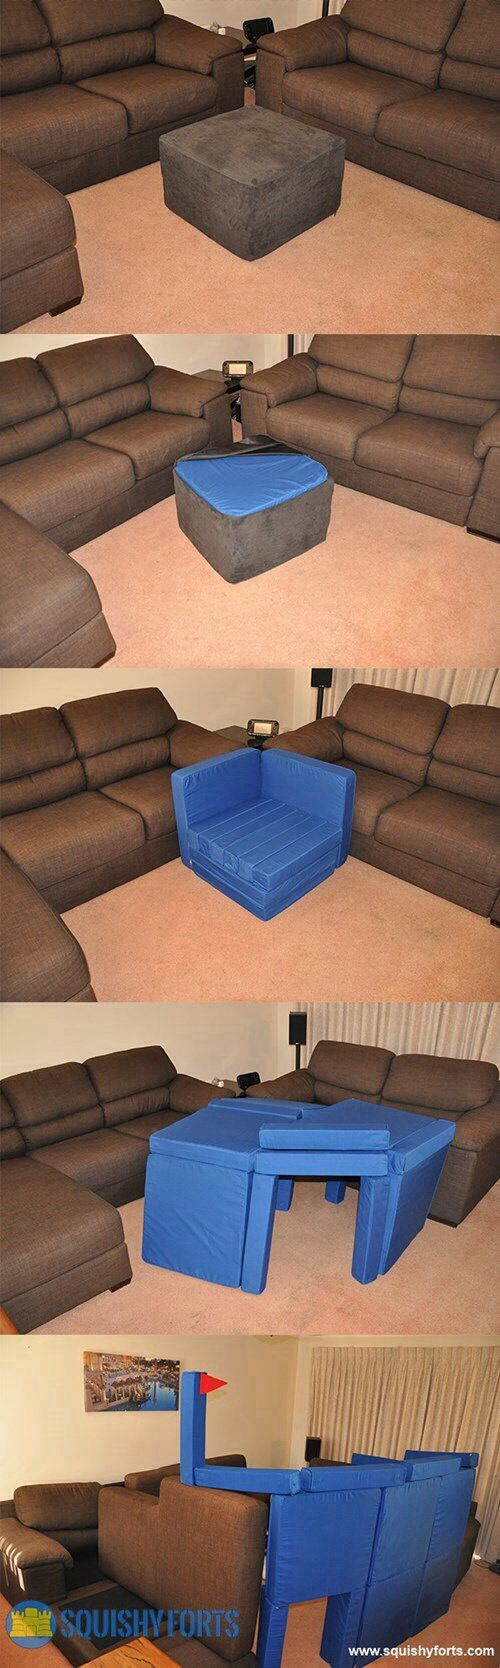 Ottoman turns into fort!